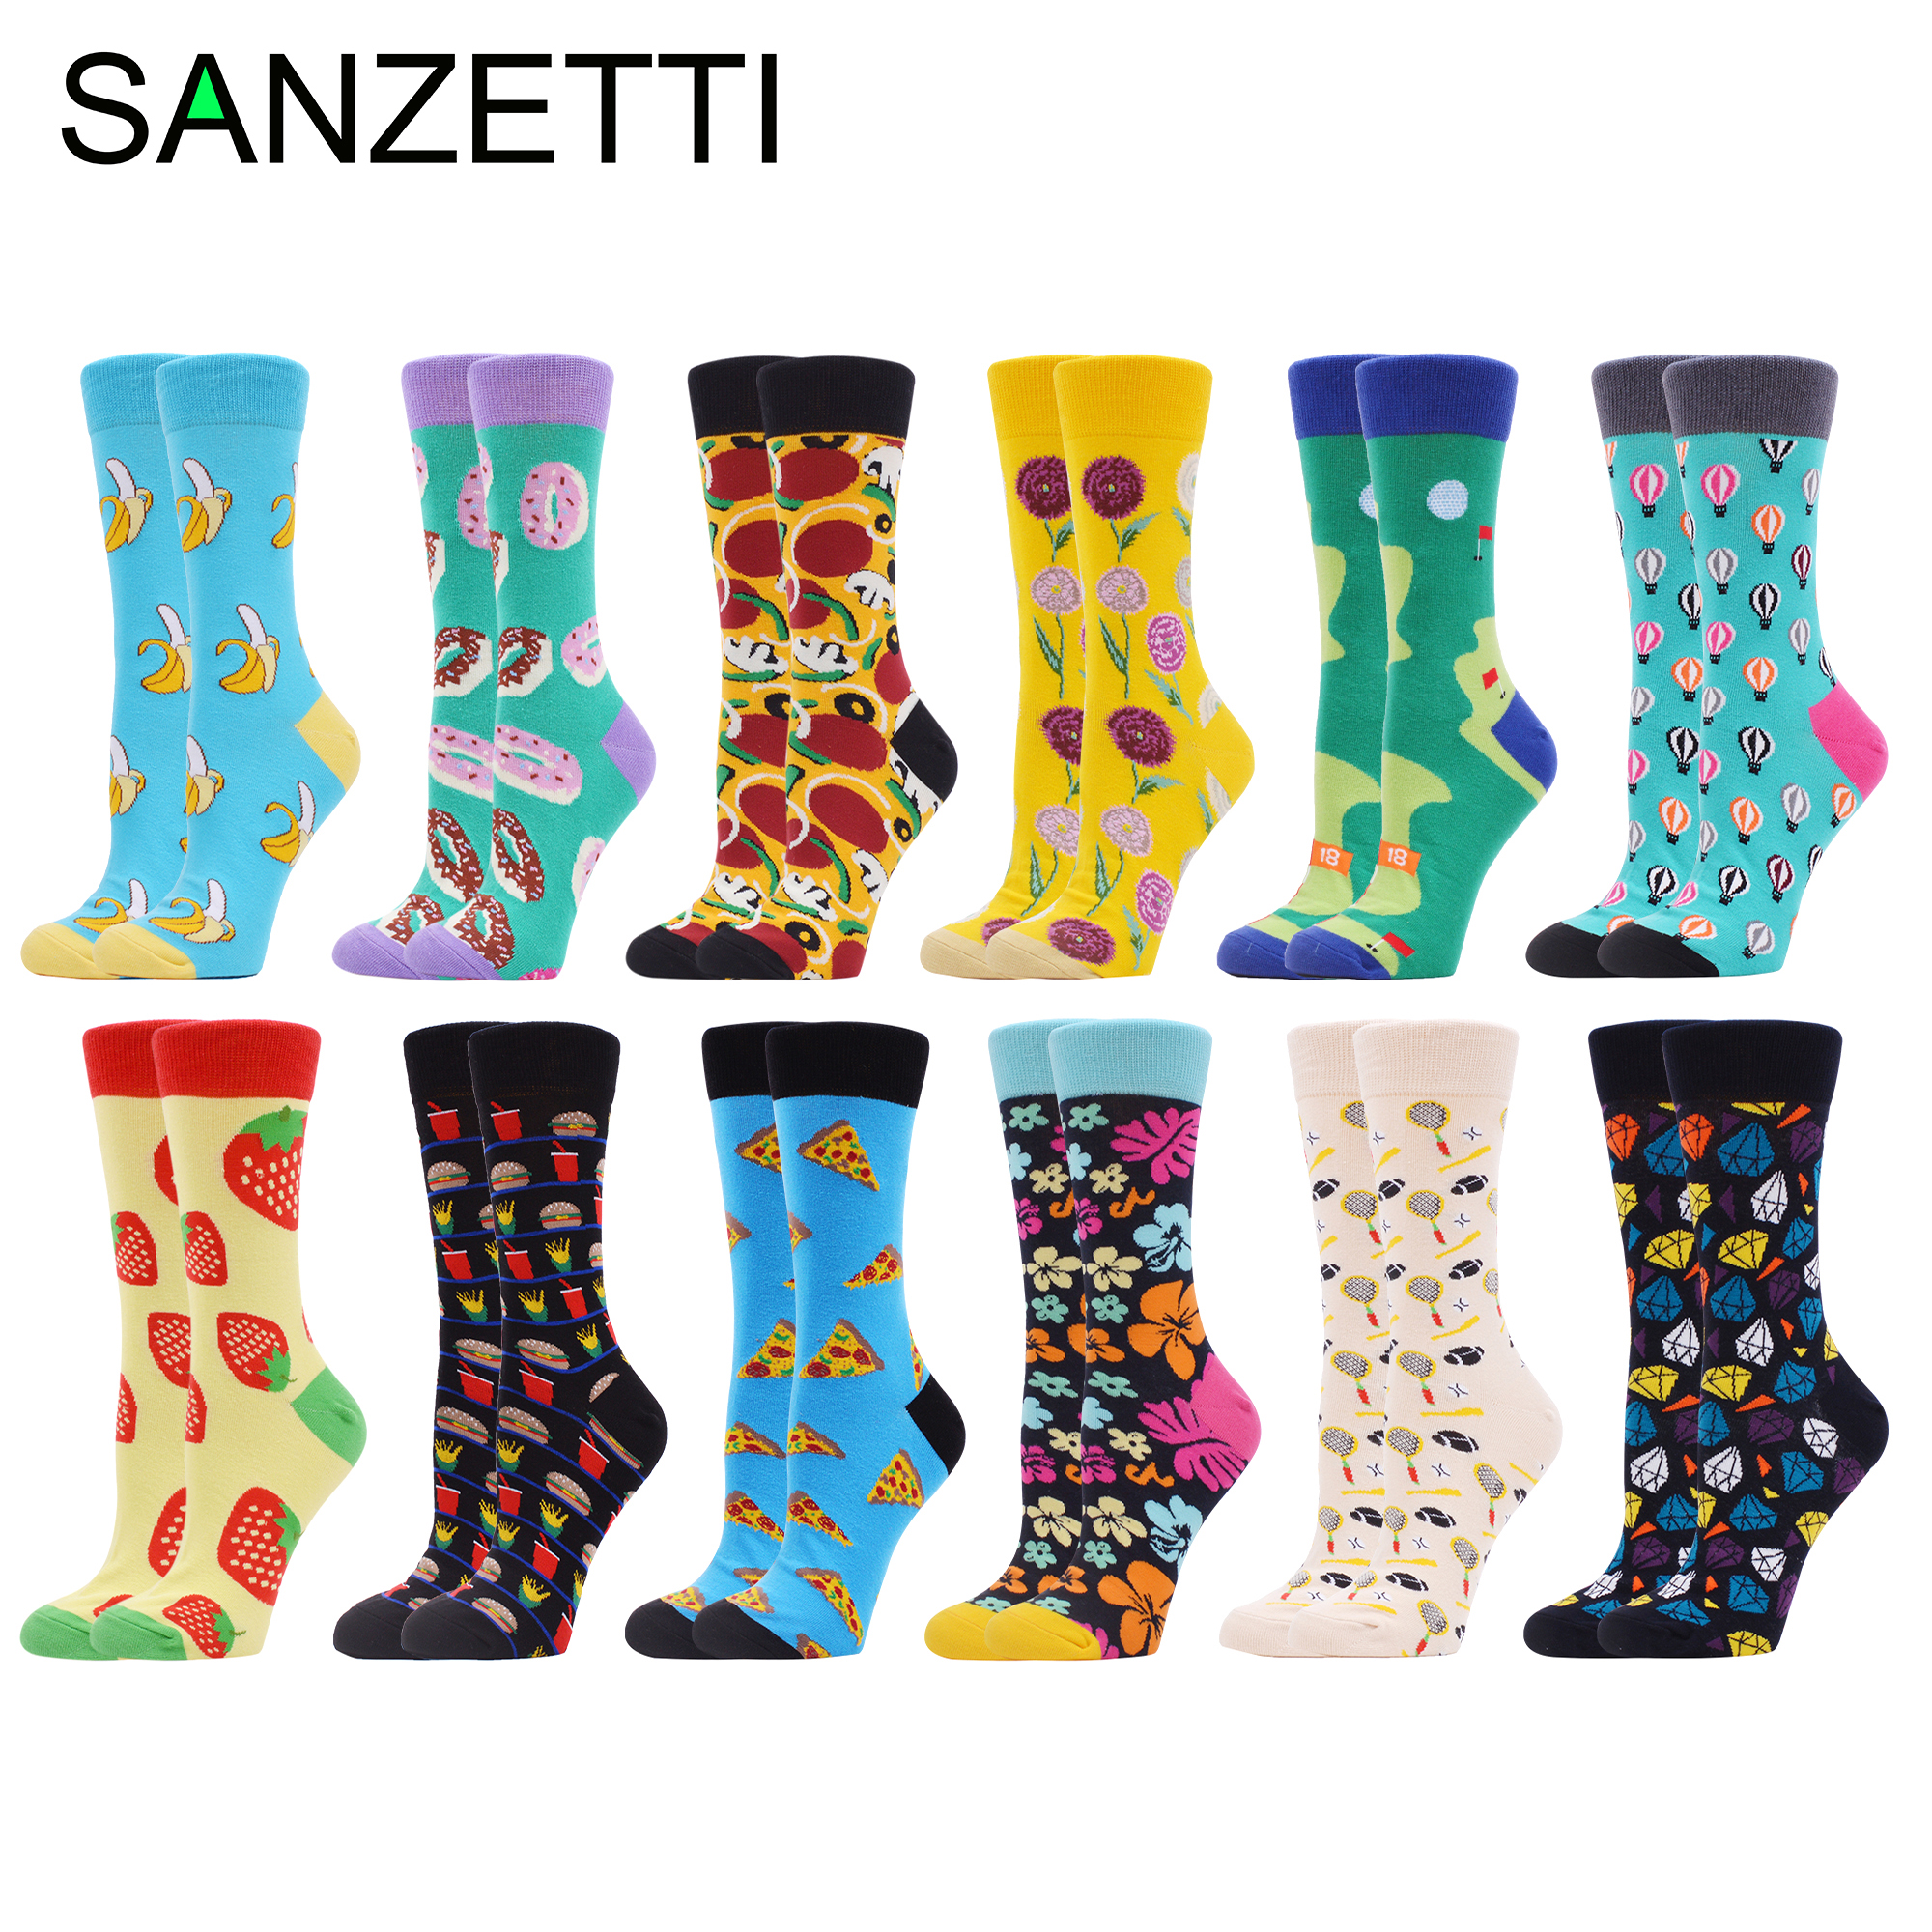 SANZETTI 12 Pairs  Women's Combed Cotton Crew Socks Happy Funny Colorful Lovely Flowers Fruit Golf Novelty Wedding Gifts Socks